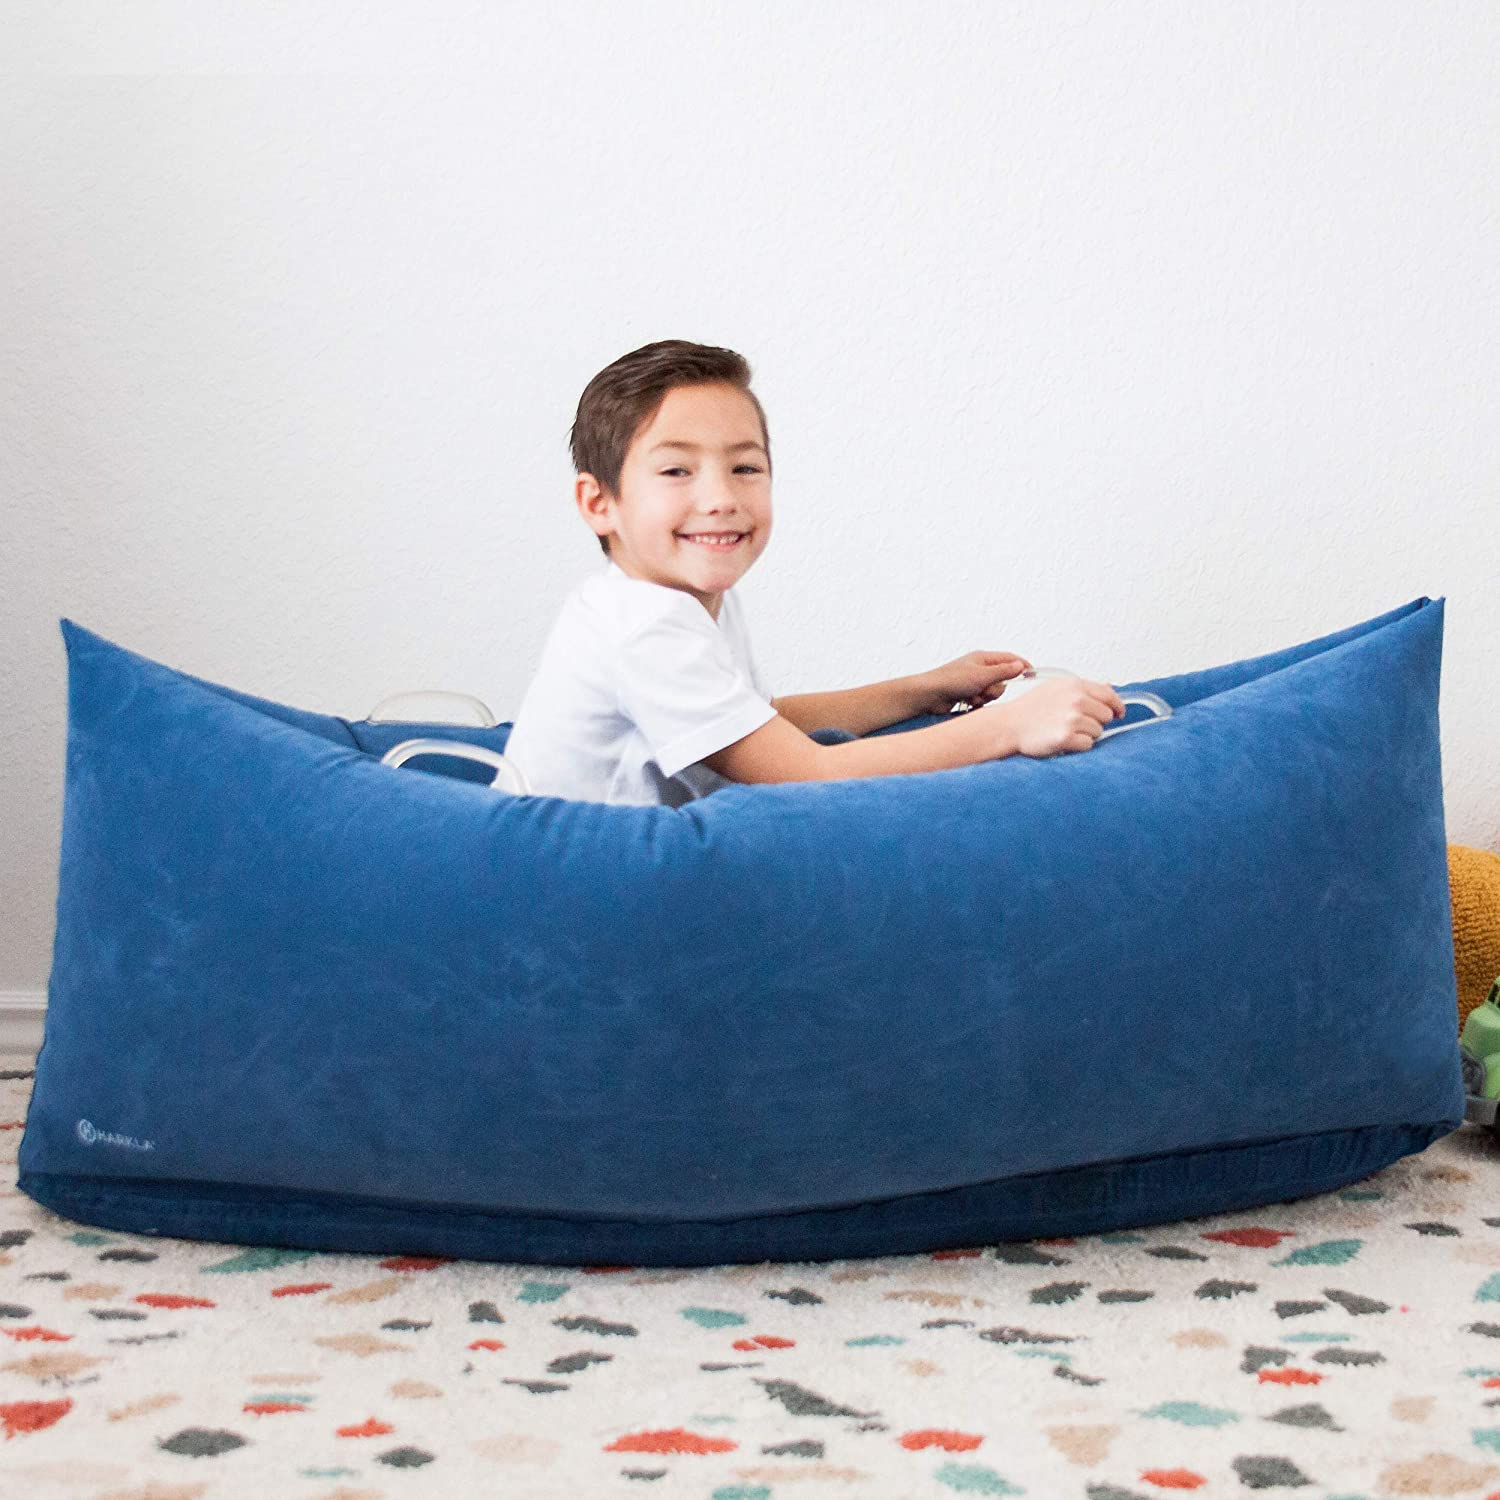 Harkla Hug (48 inches) - Inflatable Sensory Peapod for Children with Sensory Needs - Therapeutic Compression Sensory Chair for Ages 2 to 6 - Air Pump and Repair Kit Included